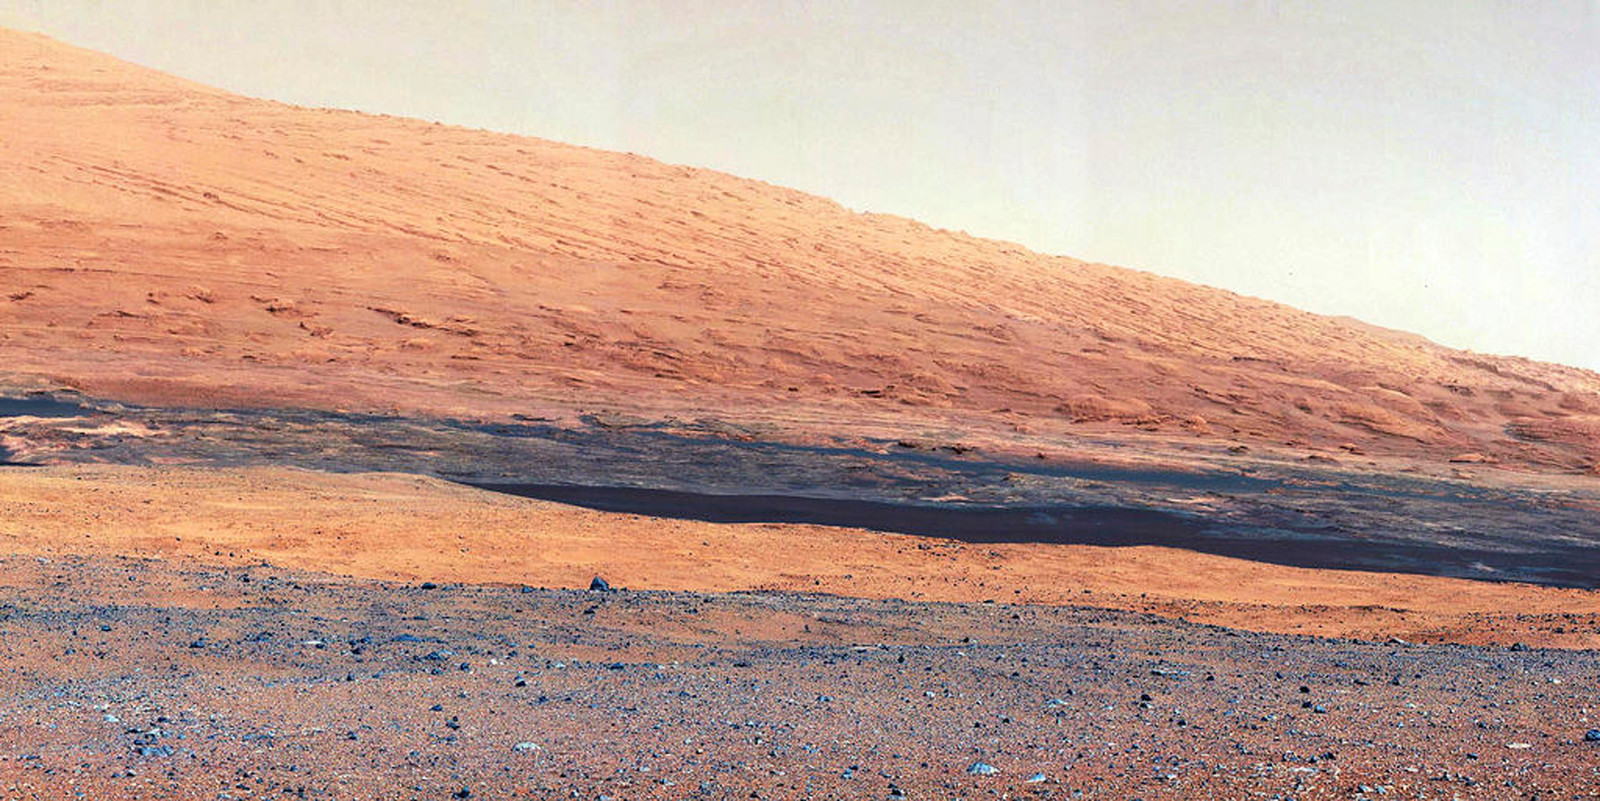 Mount Sharp, gefotografeerd door Curiosity.